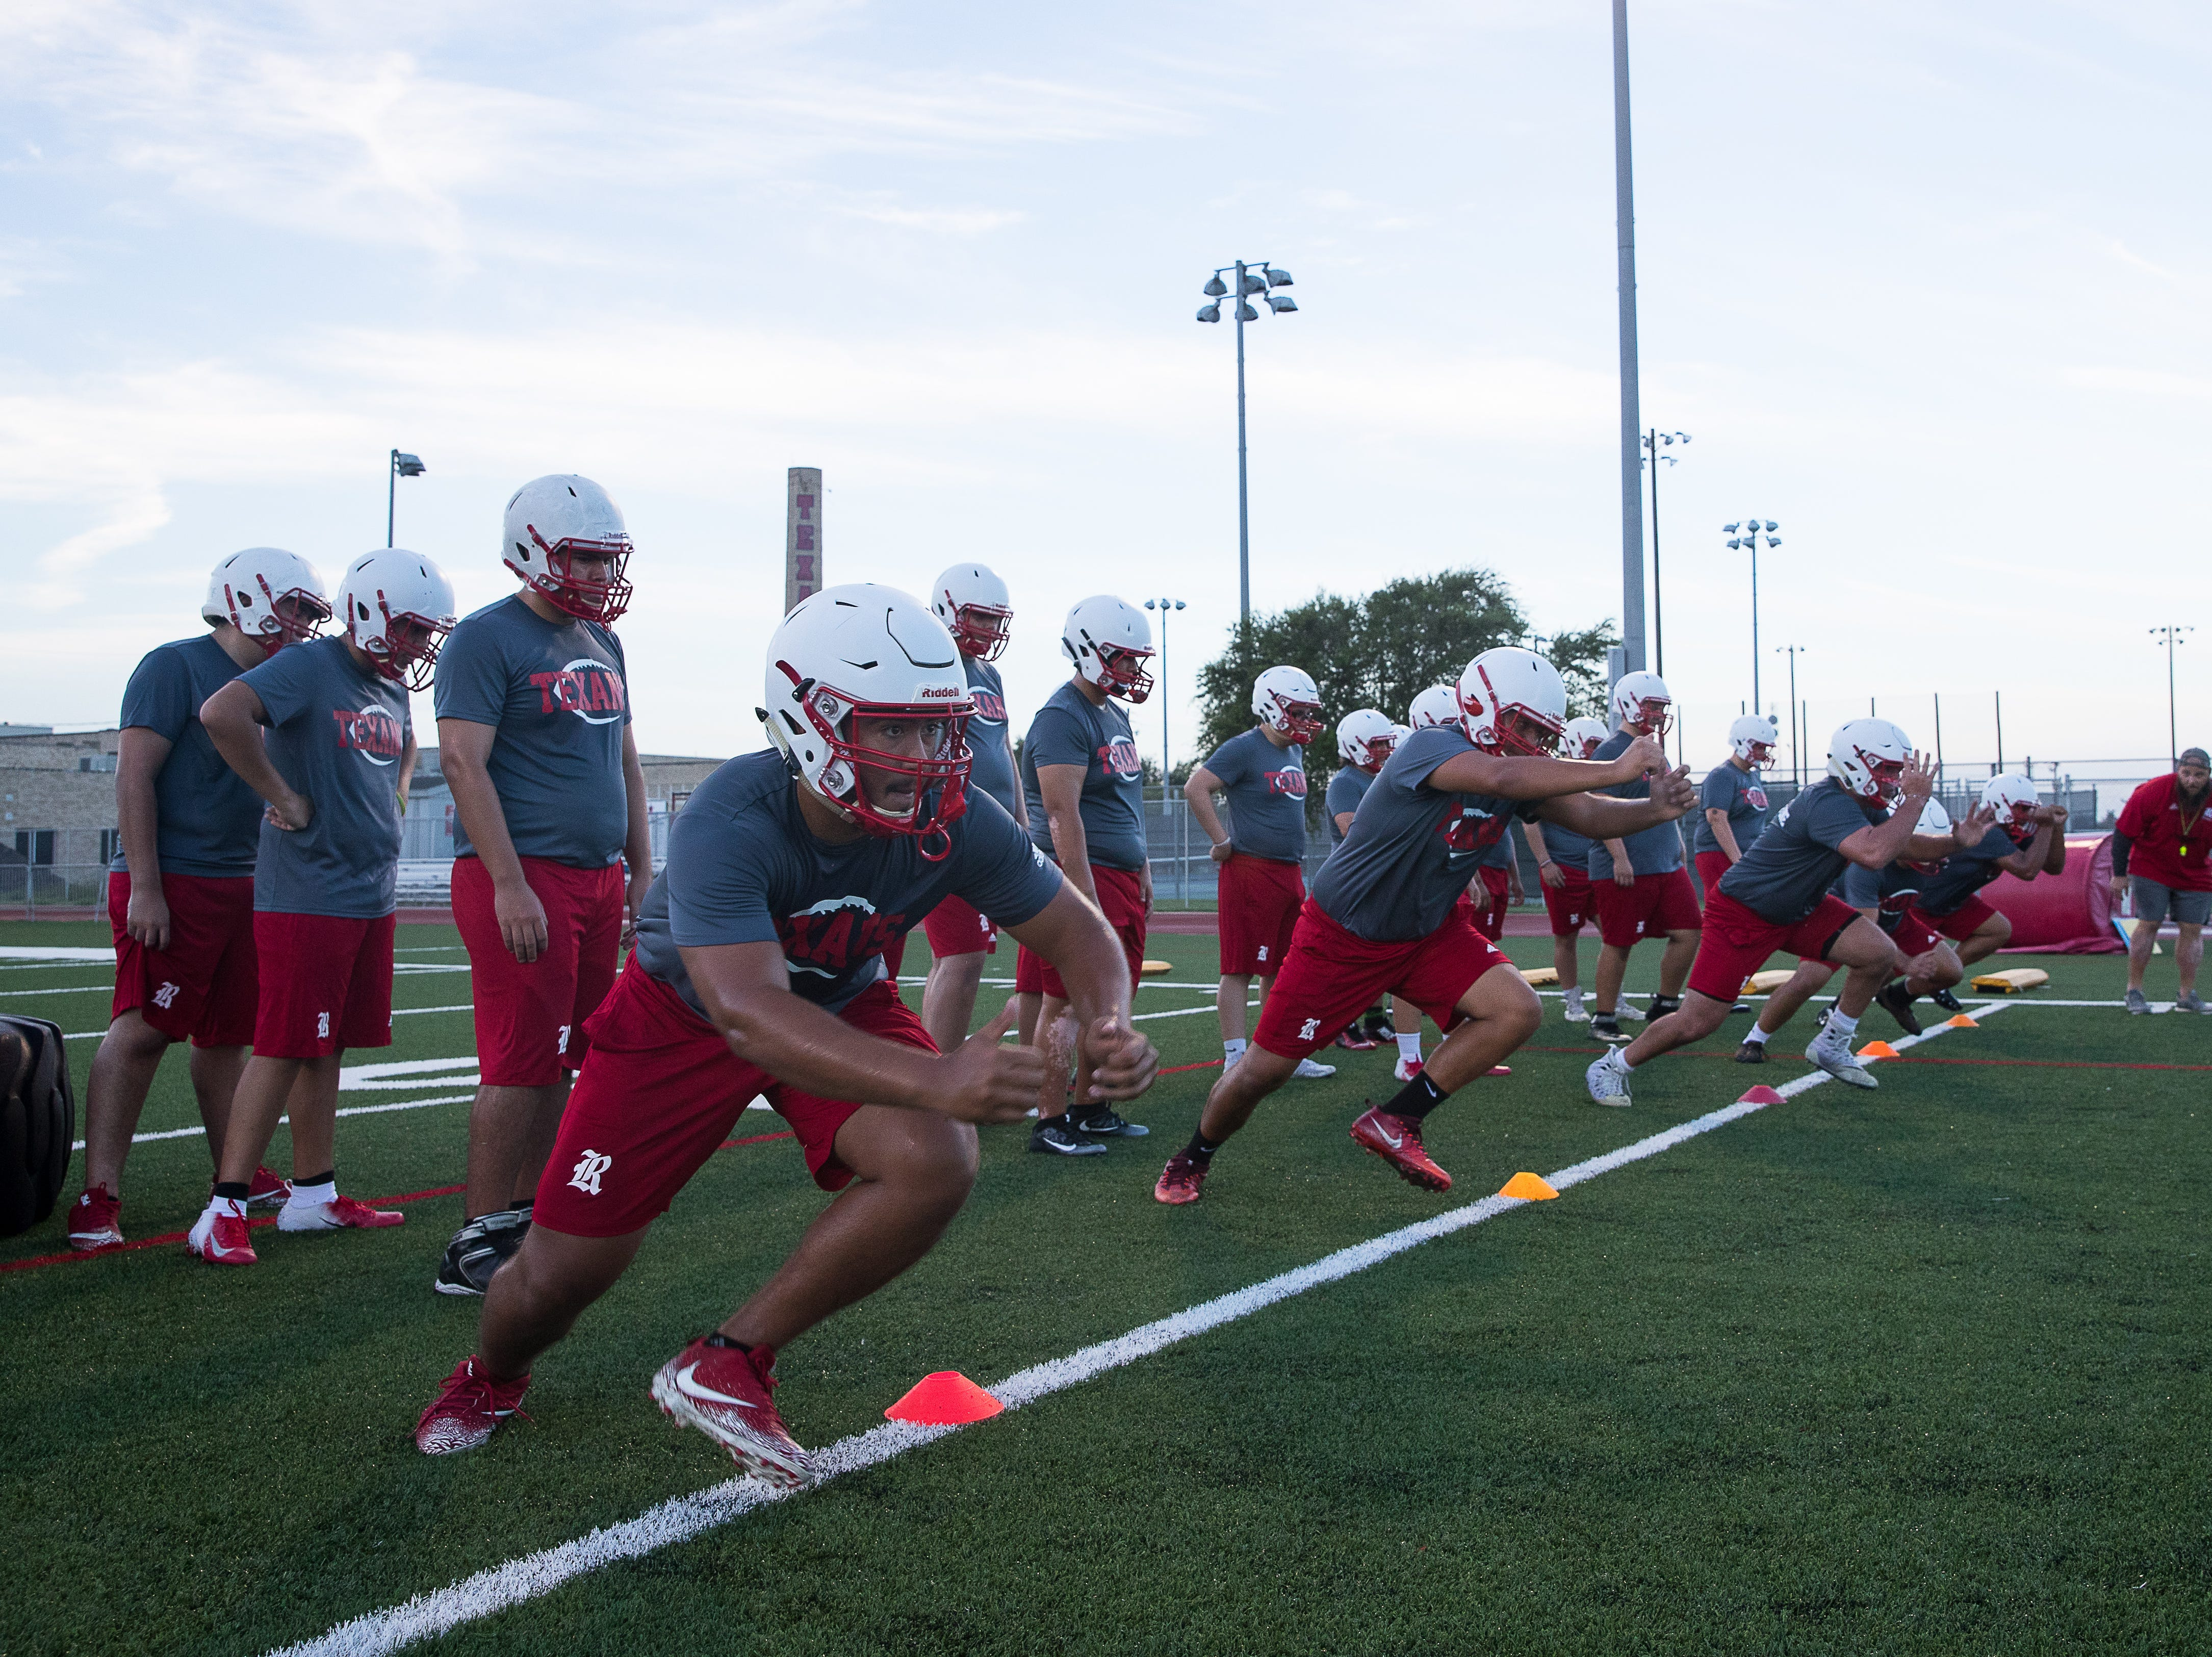 Ray football players run drills on the first day of practice for the 2018 season at Ray High School on Monday, Aug. 6, 2018.